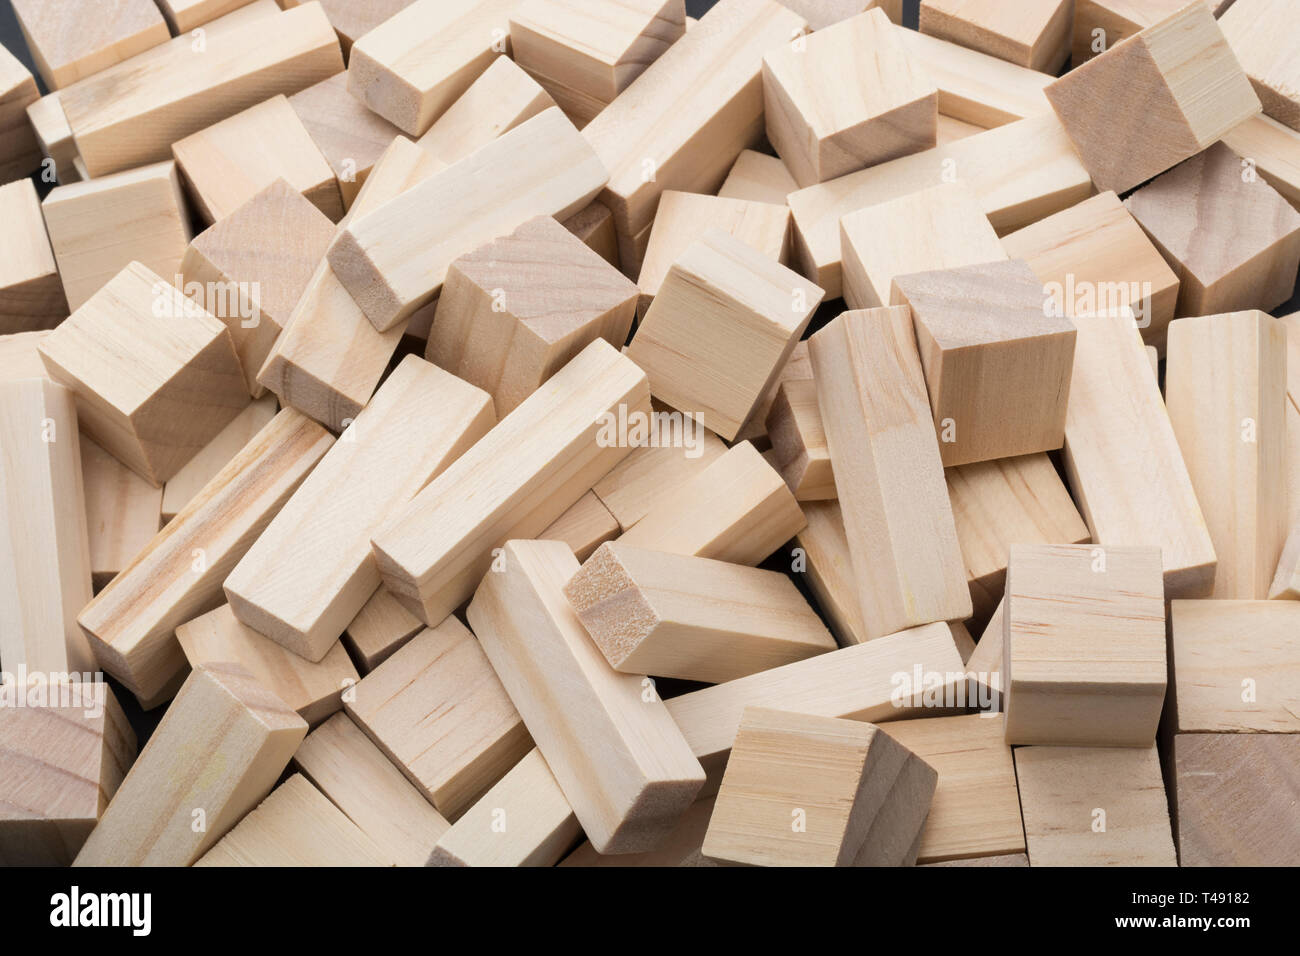 Small wooden bricks scattered in a disorganised pile. Metaphor chaos, messy, untidy, jumbled up, mixed up, in a muddle, confused thoughts, tumble. - Stock Image